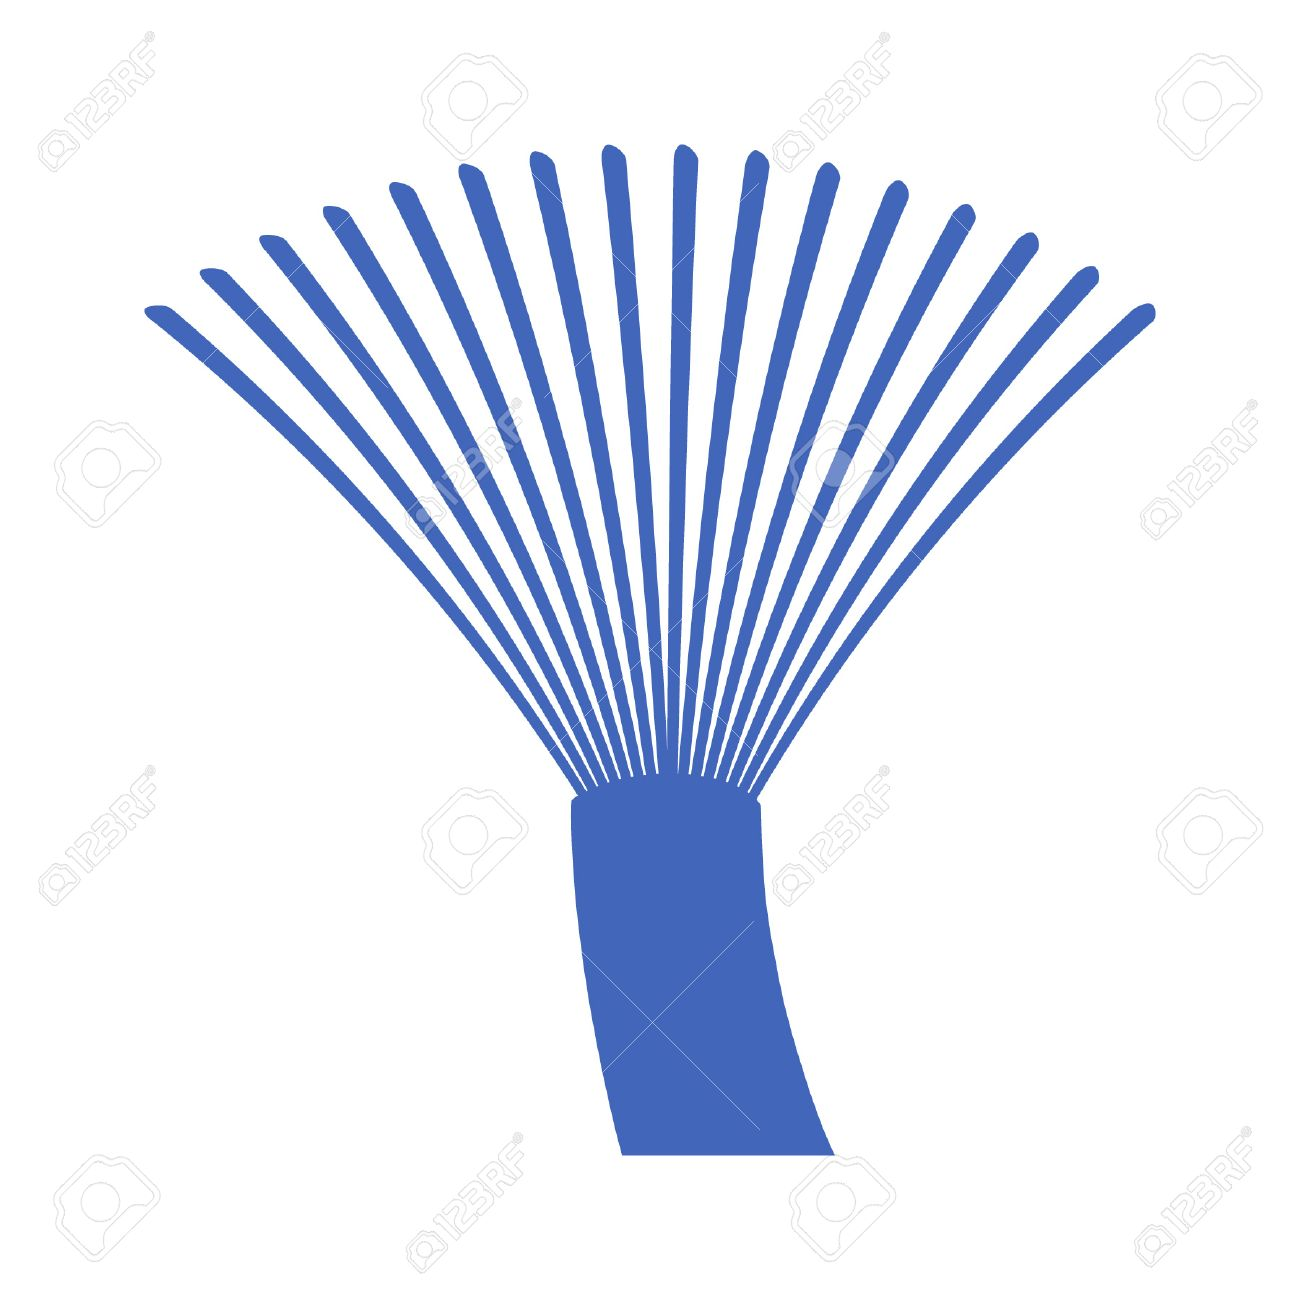 Fiber Optics Communication Cable Wire Icon Royalty Free Cliparts ...